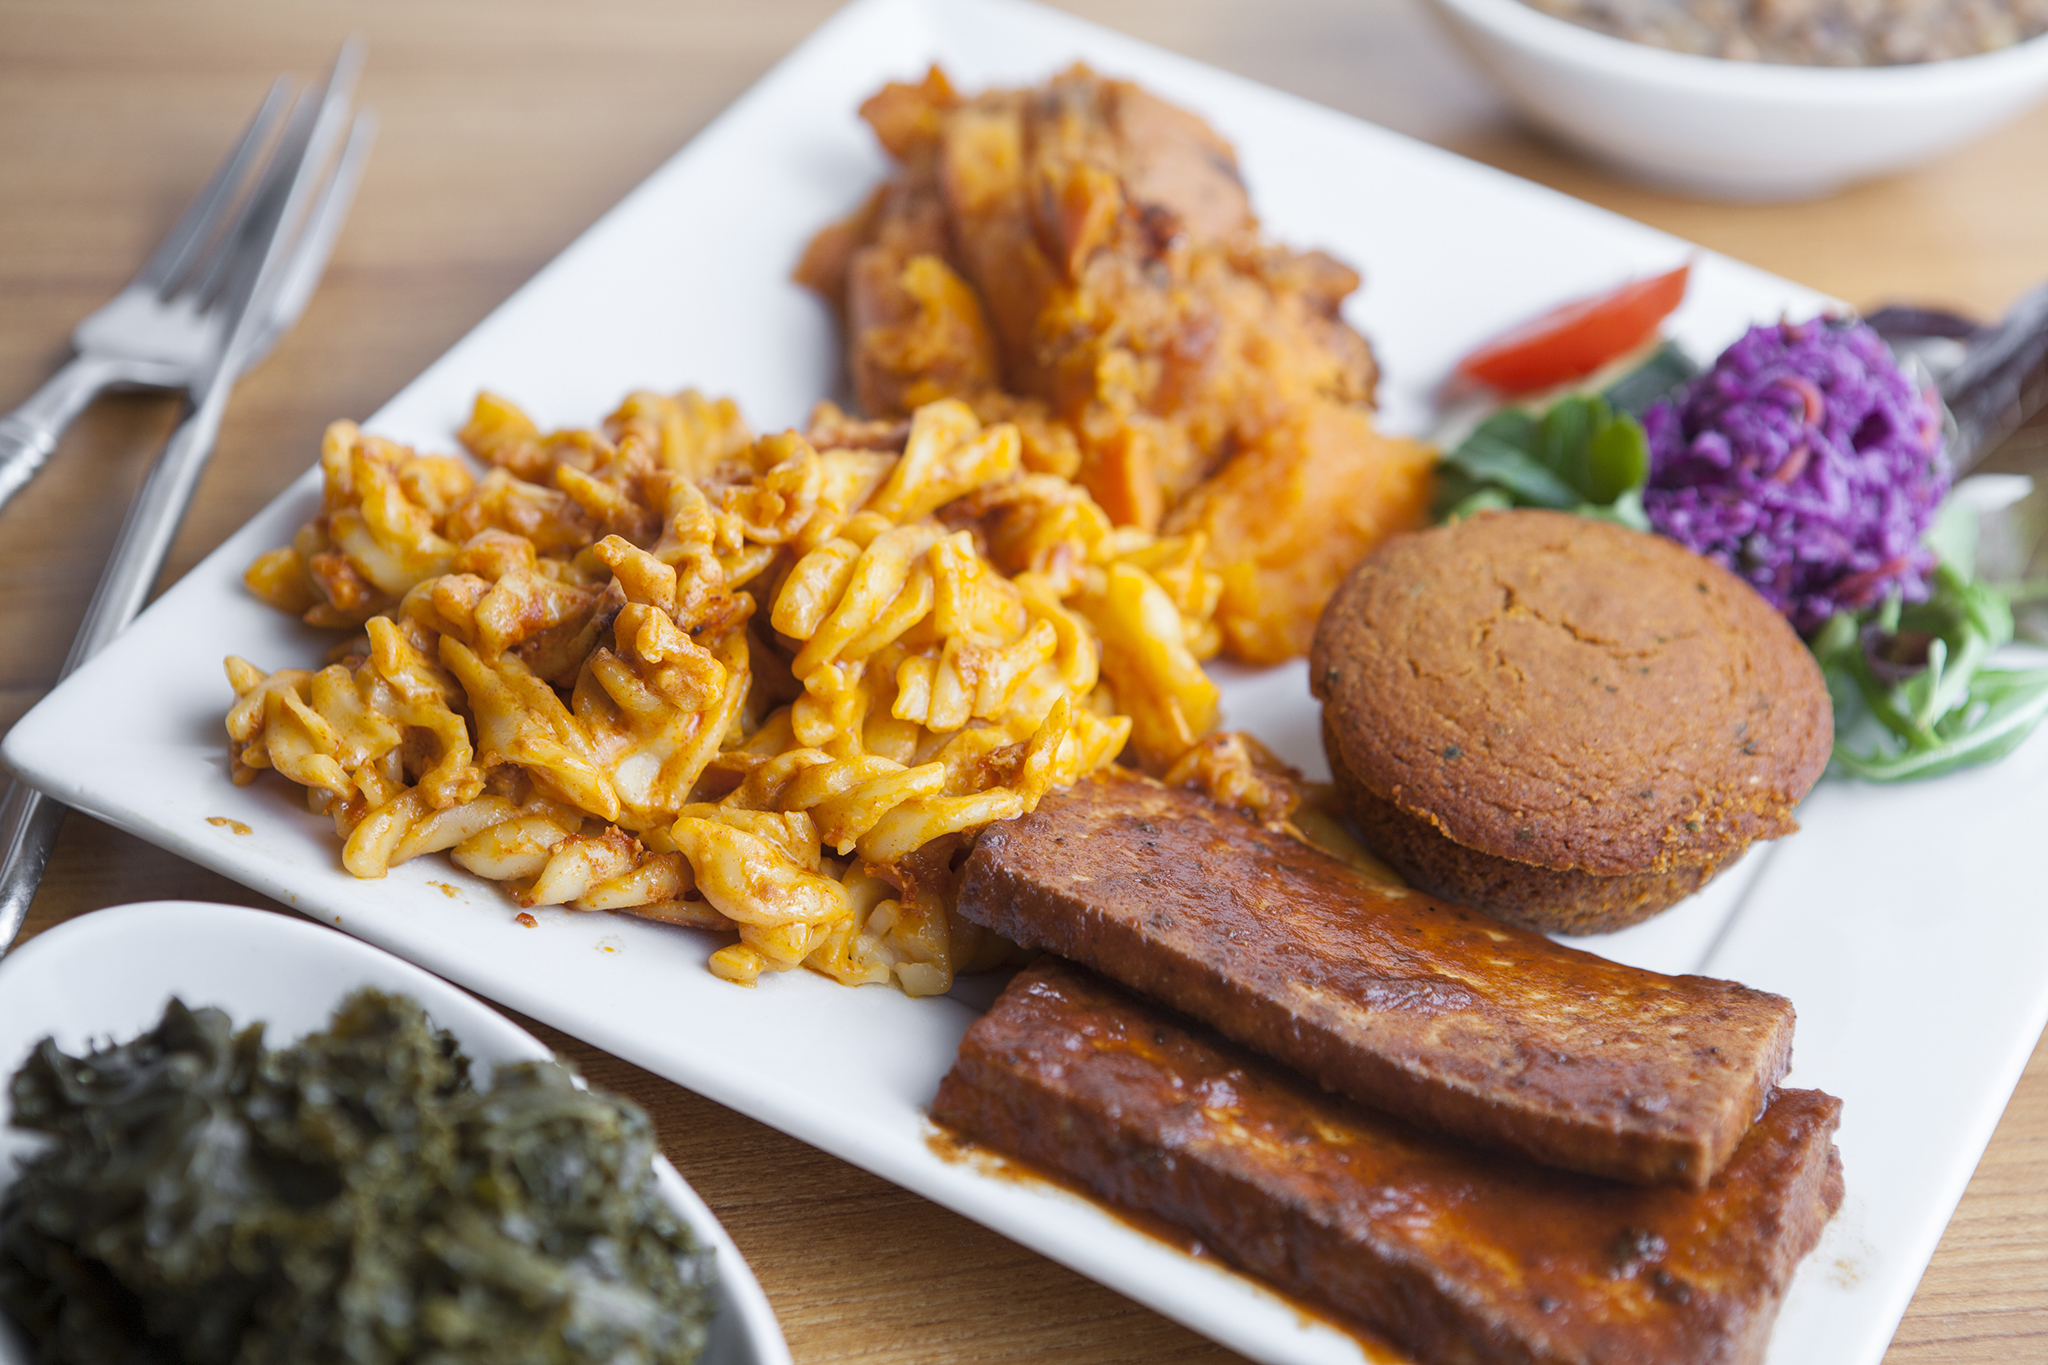 Best Vegan Restaurants In Los Angeles